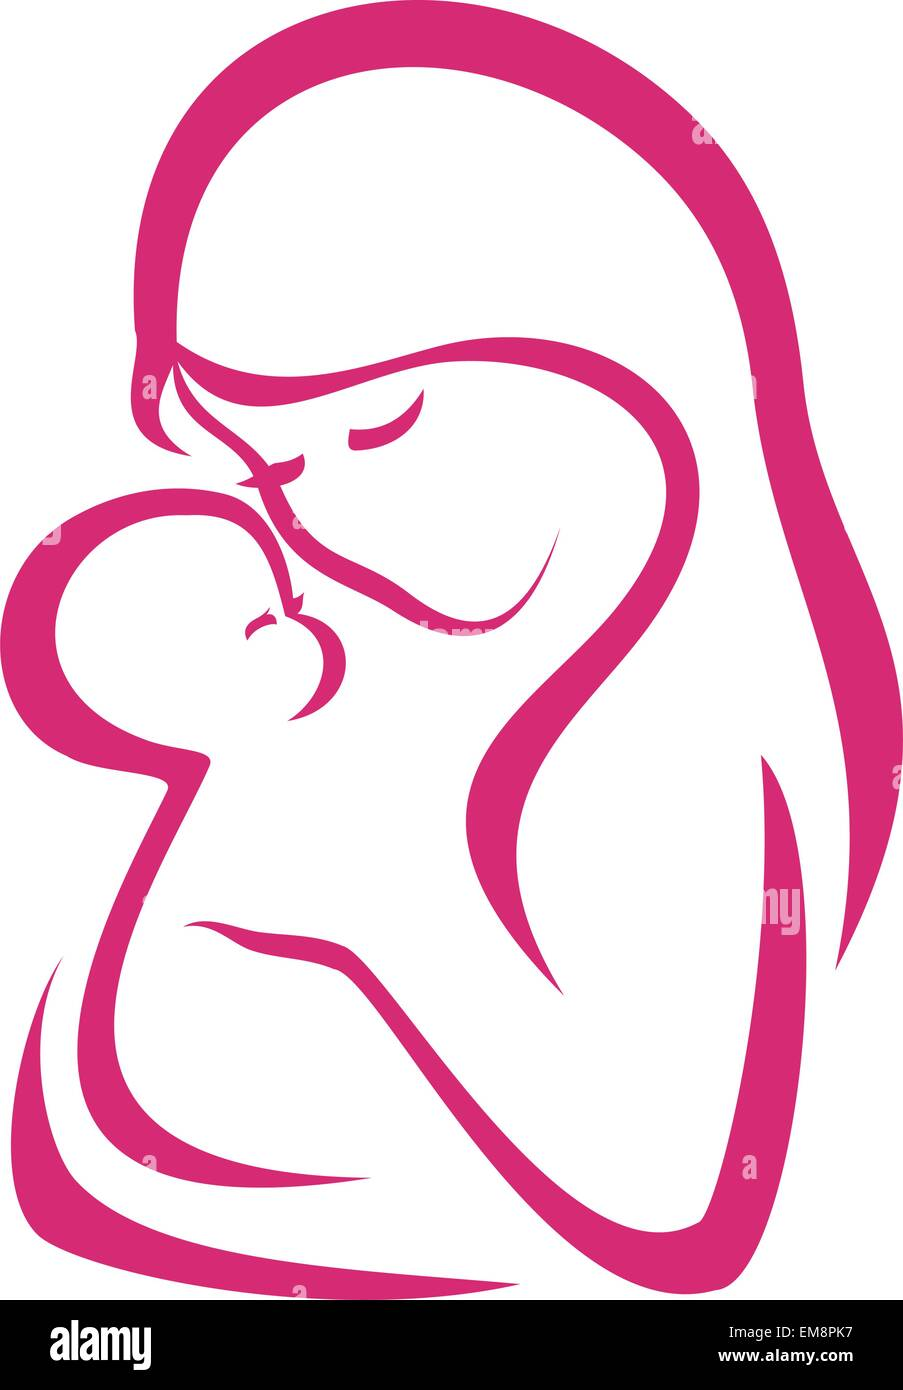 mama and baby vector symbol in simple lines stock vector art